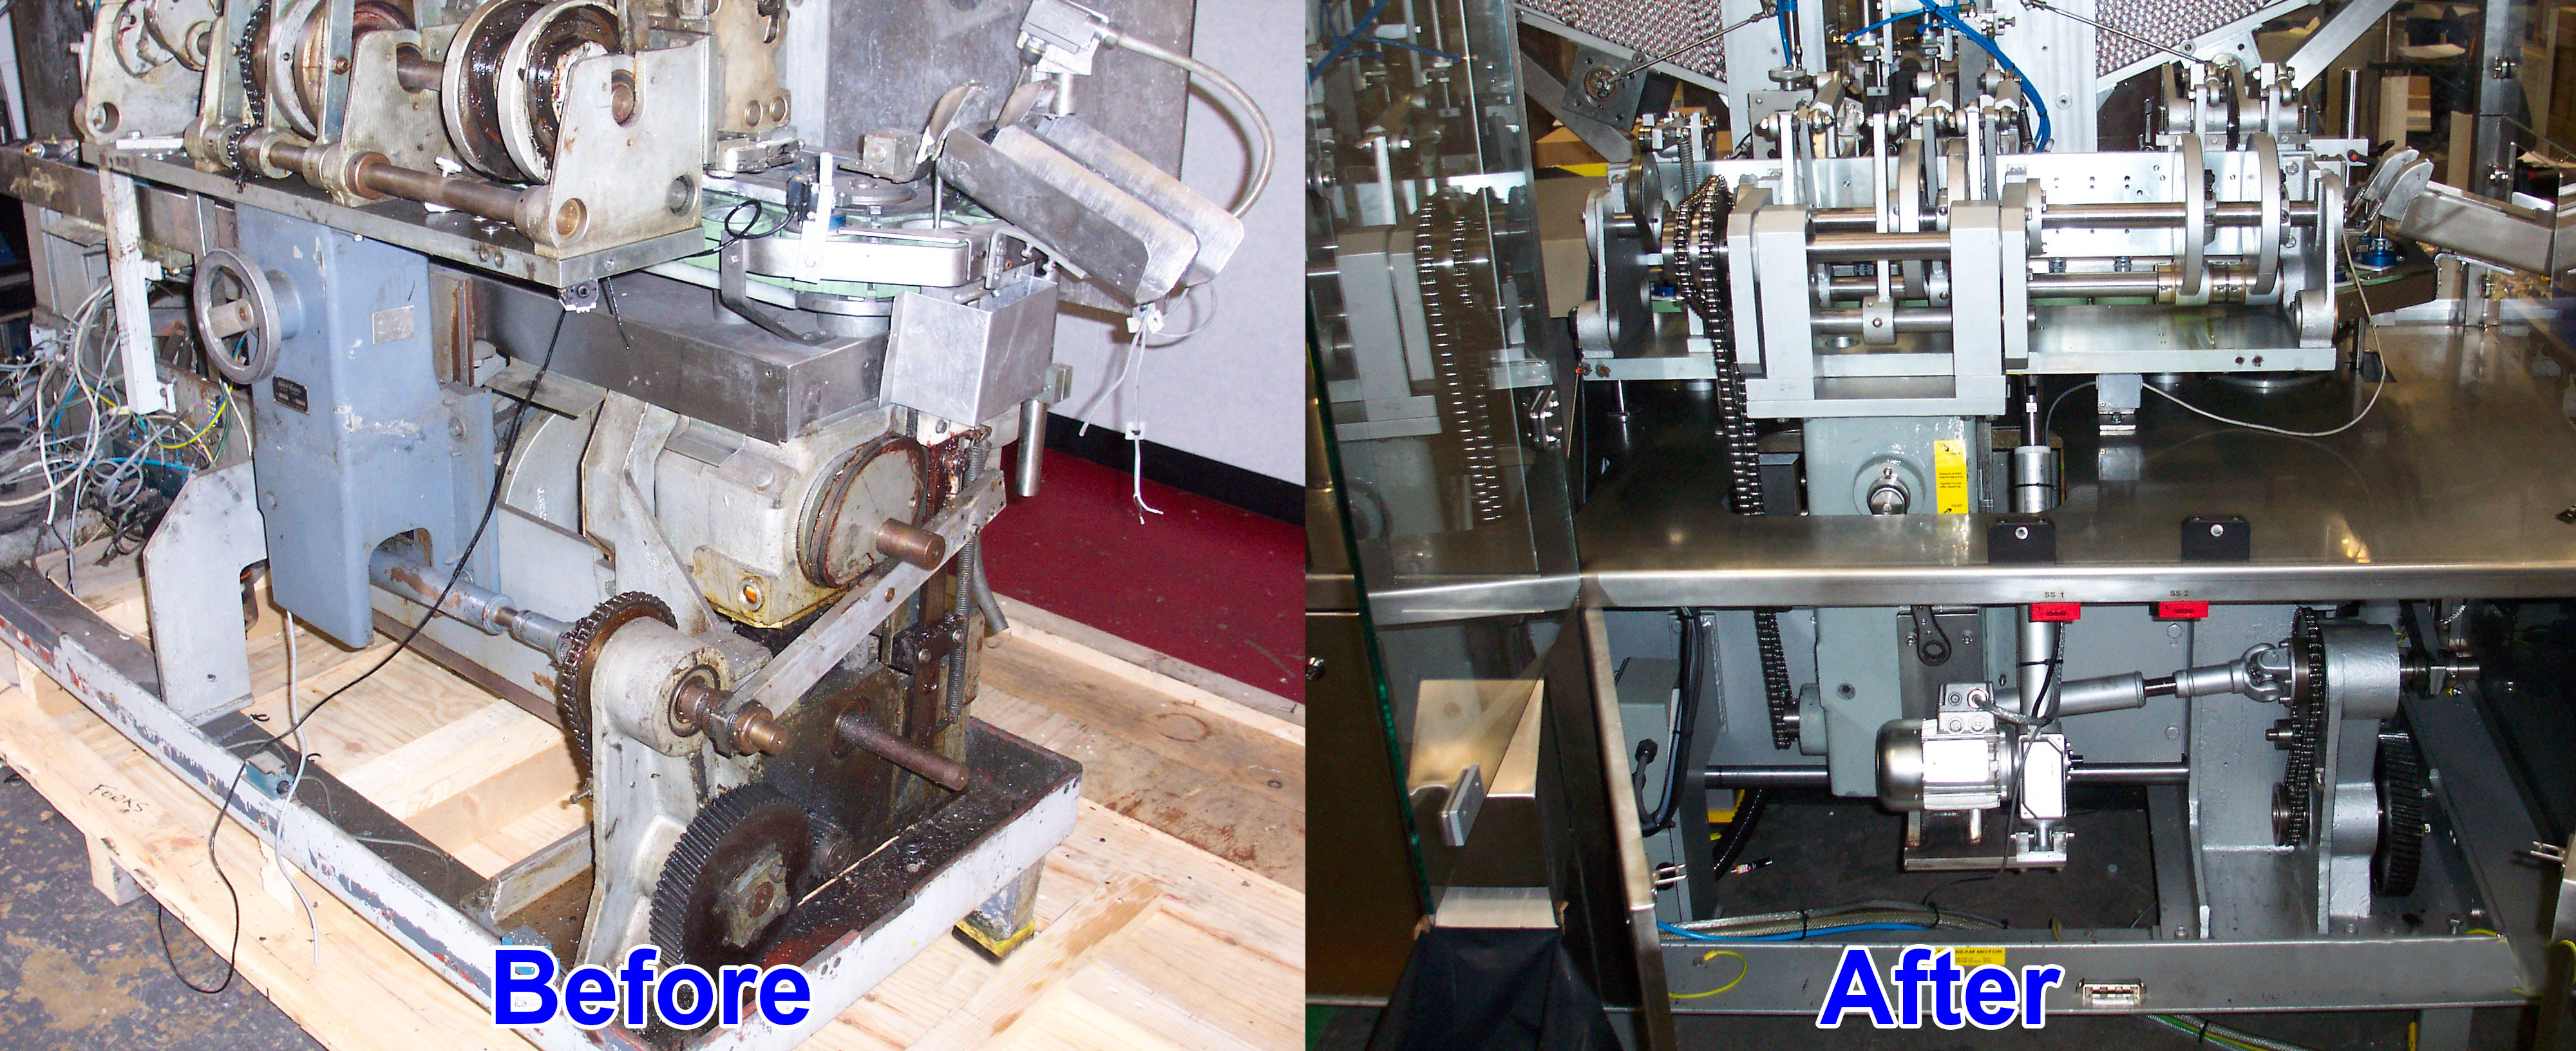 Showing the machine before and after